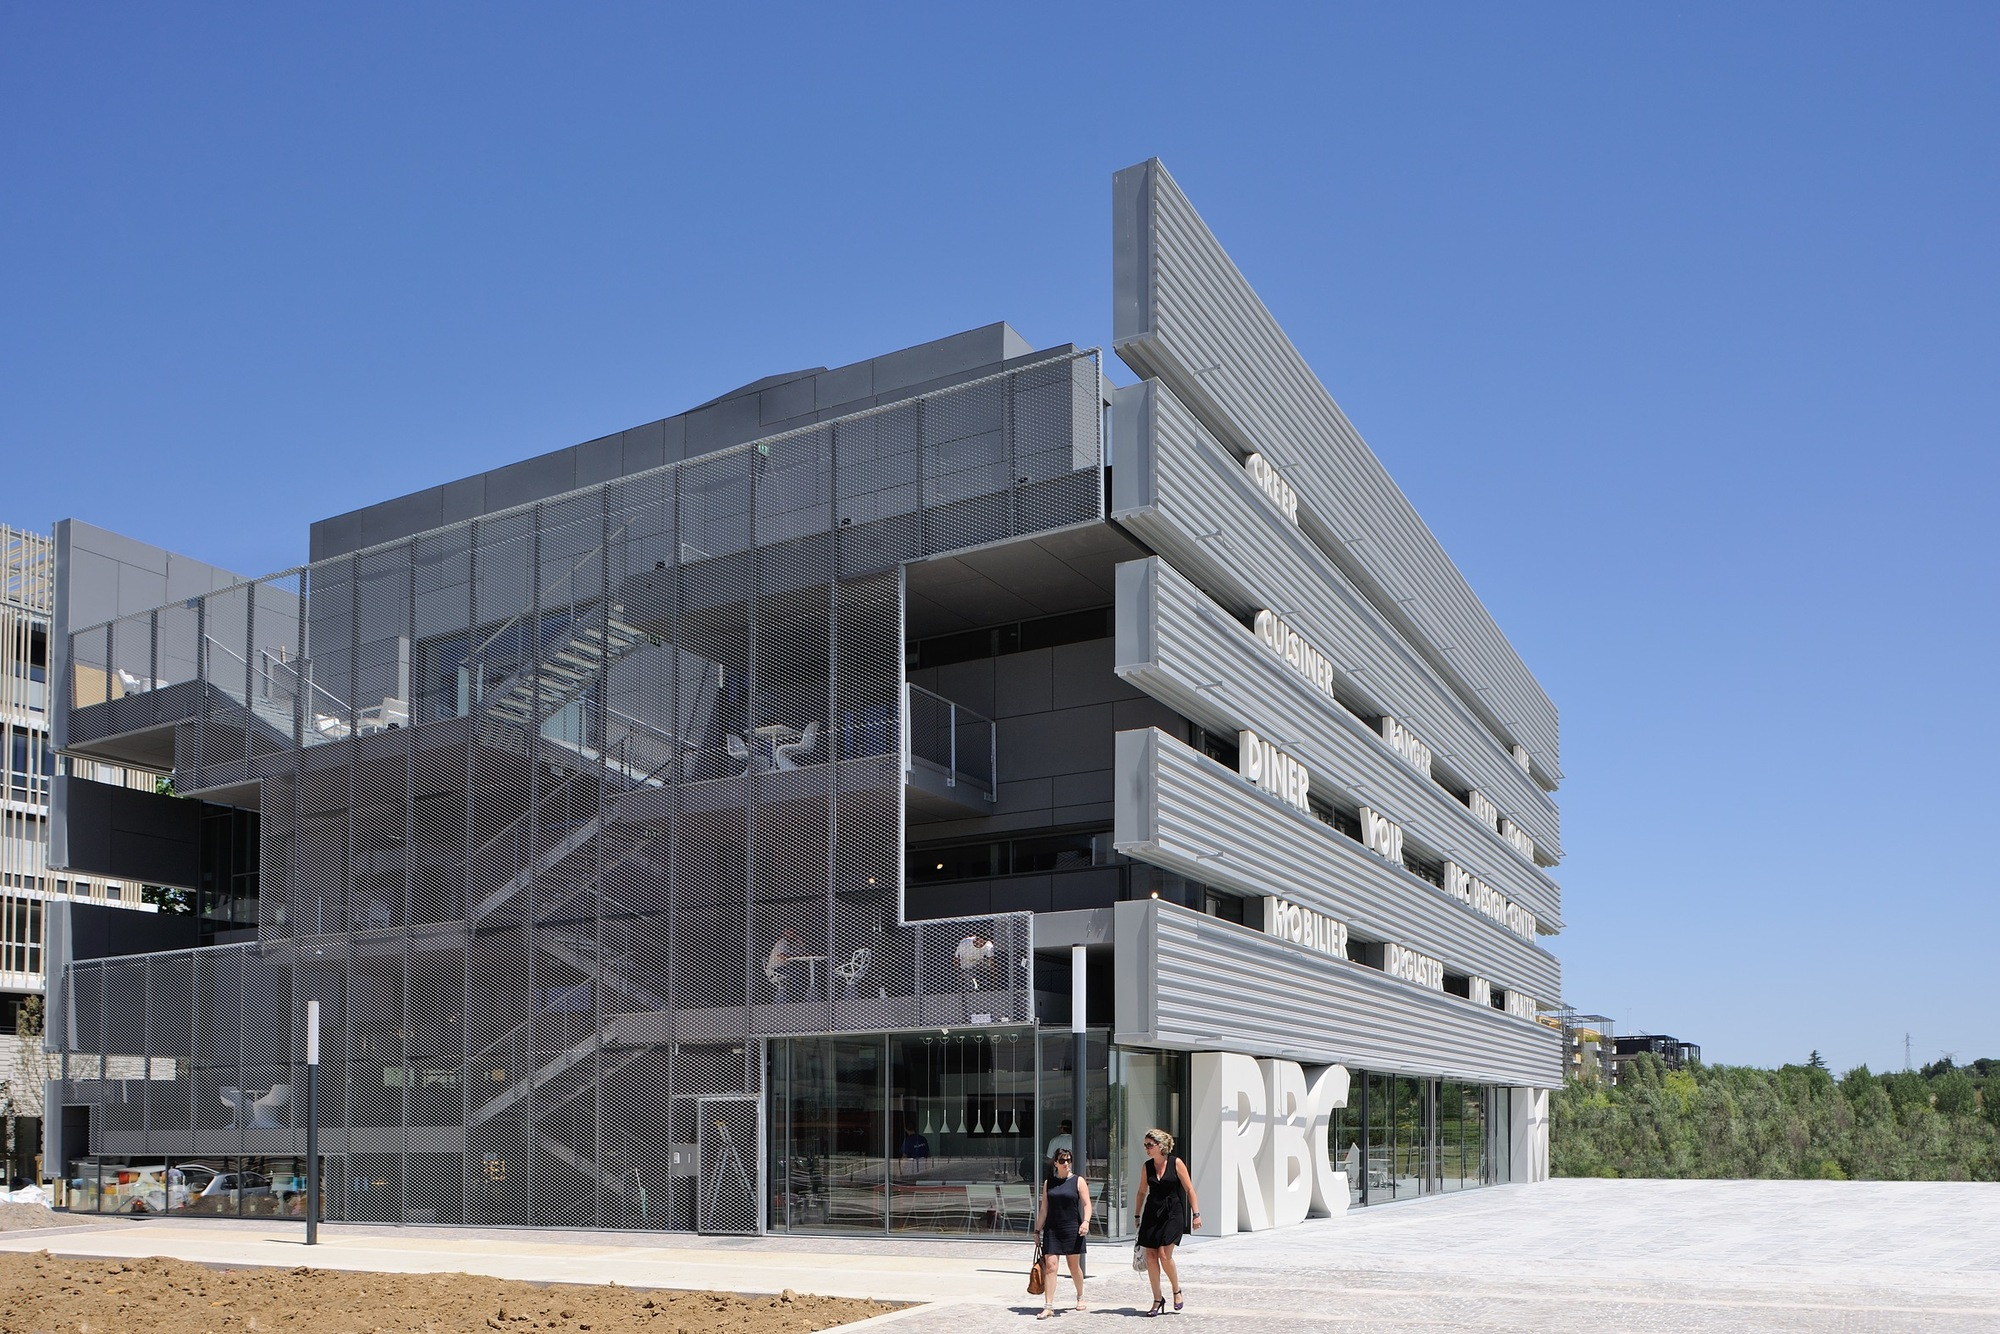 Magasin De Design Montpellier retail architecture and design | archdaily